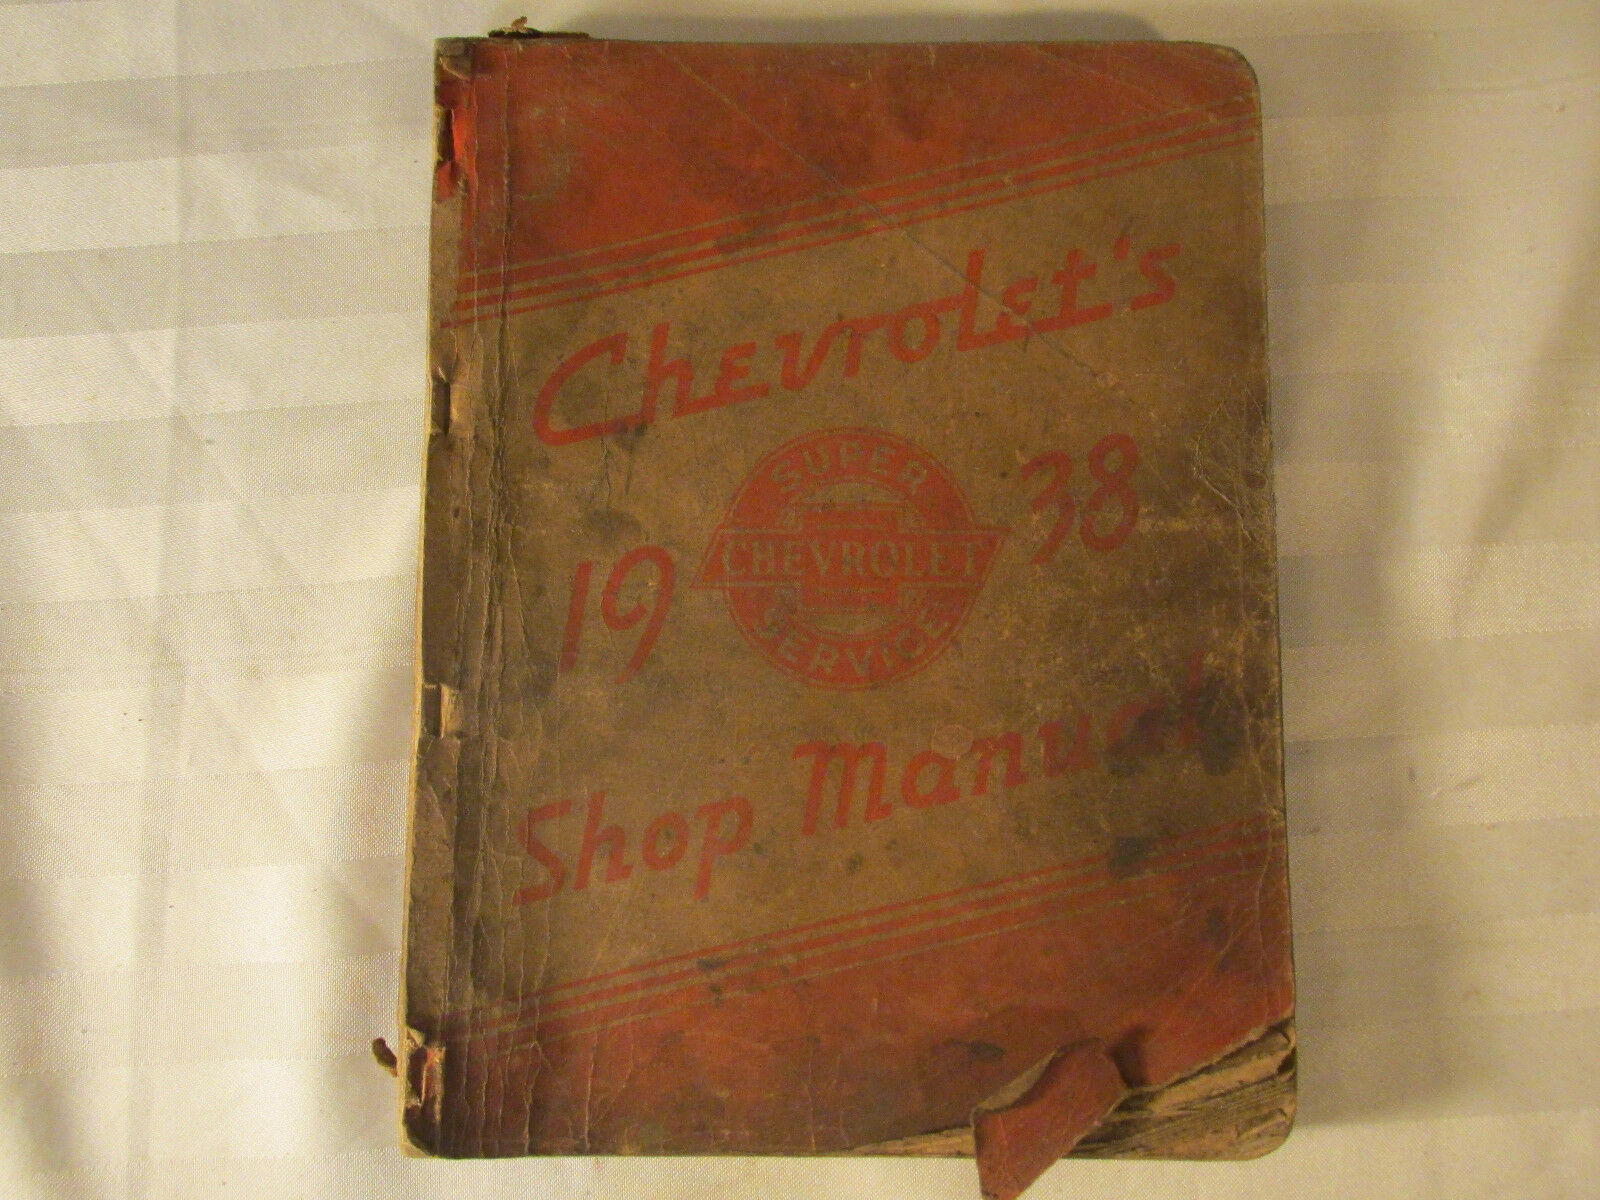 Vintage 1938 Chevrolet Shop Manual Oem General Motors Original 1 of 7FREE  Shipping ...